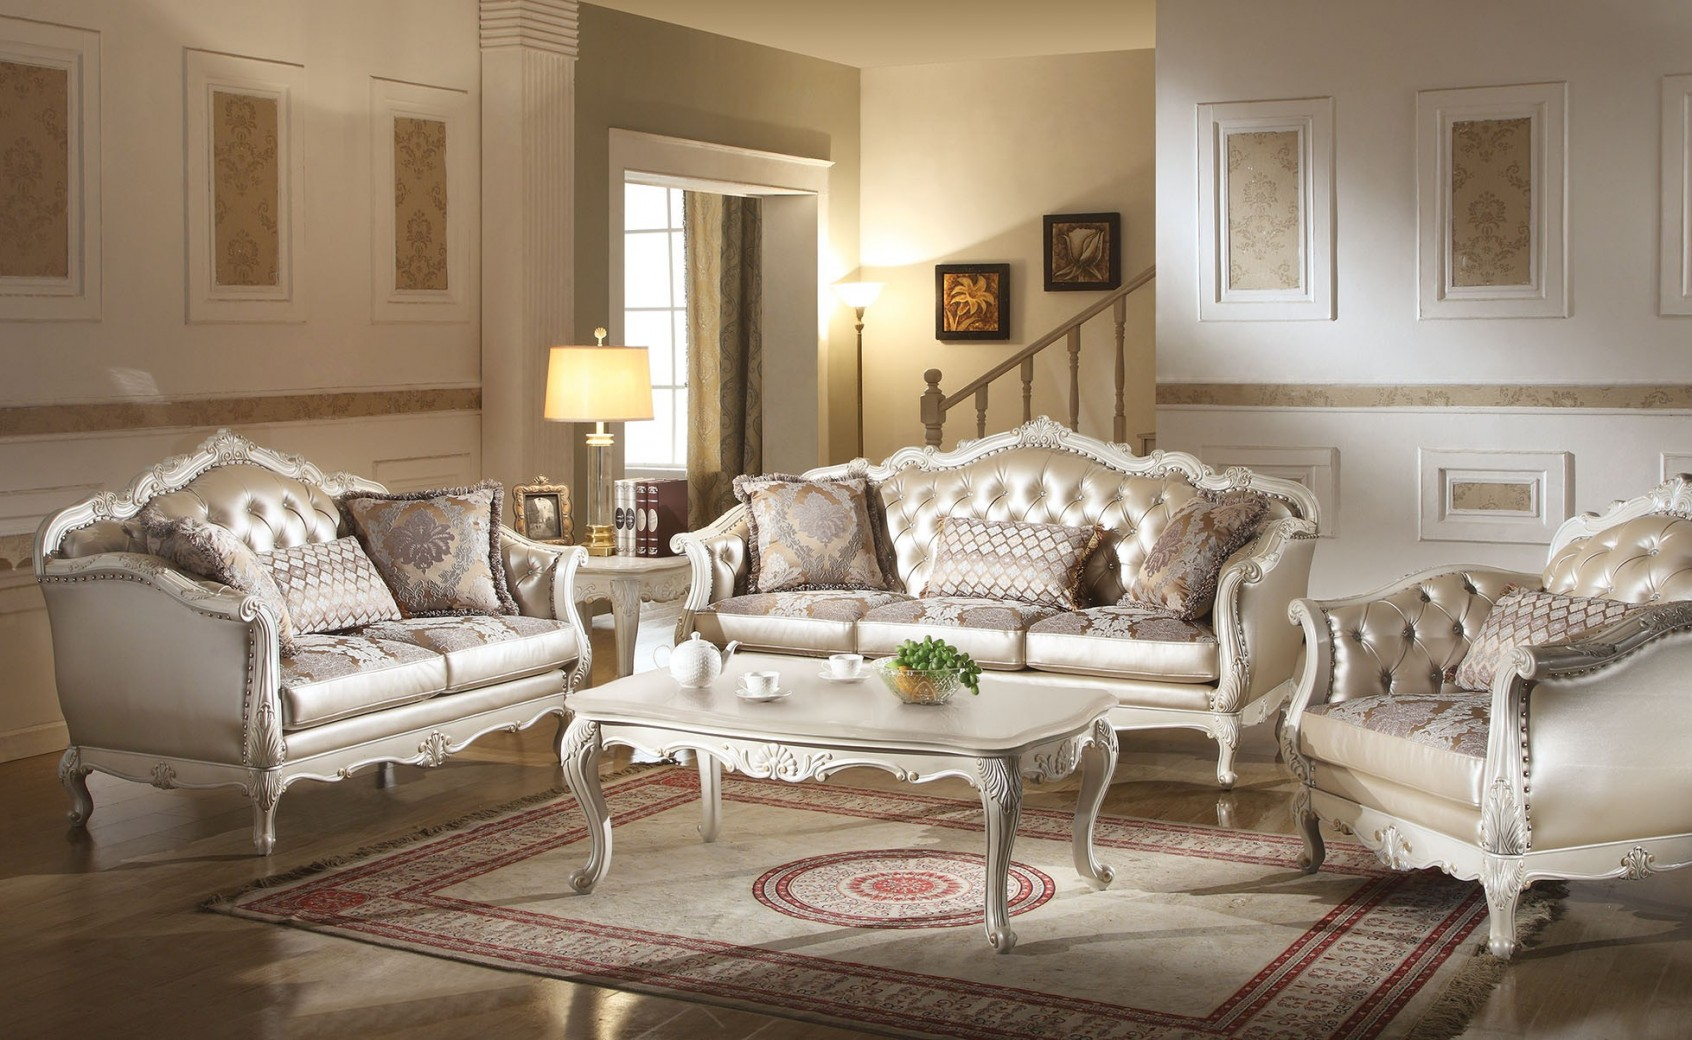 53540 Acme Chantelle Collection Living Room Set Pearl White Finish Rose Golden Pu for 12 Clever Ways How to Build All White Living Room Set